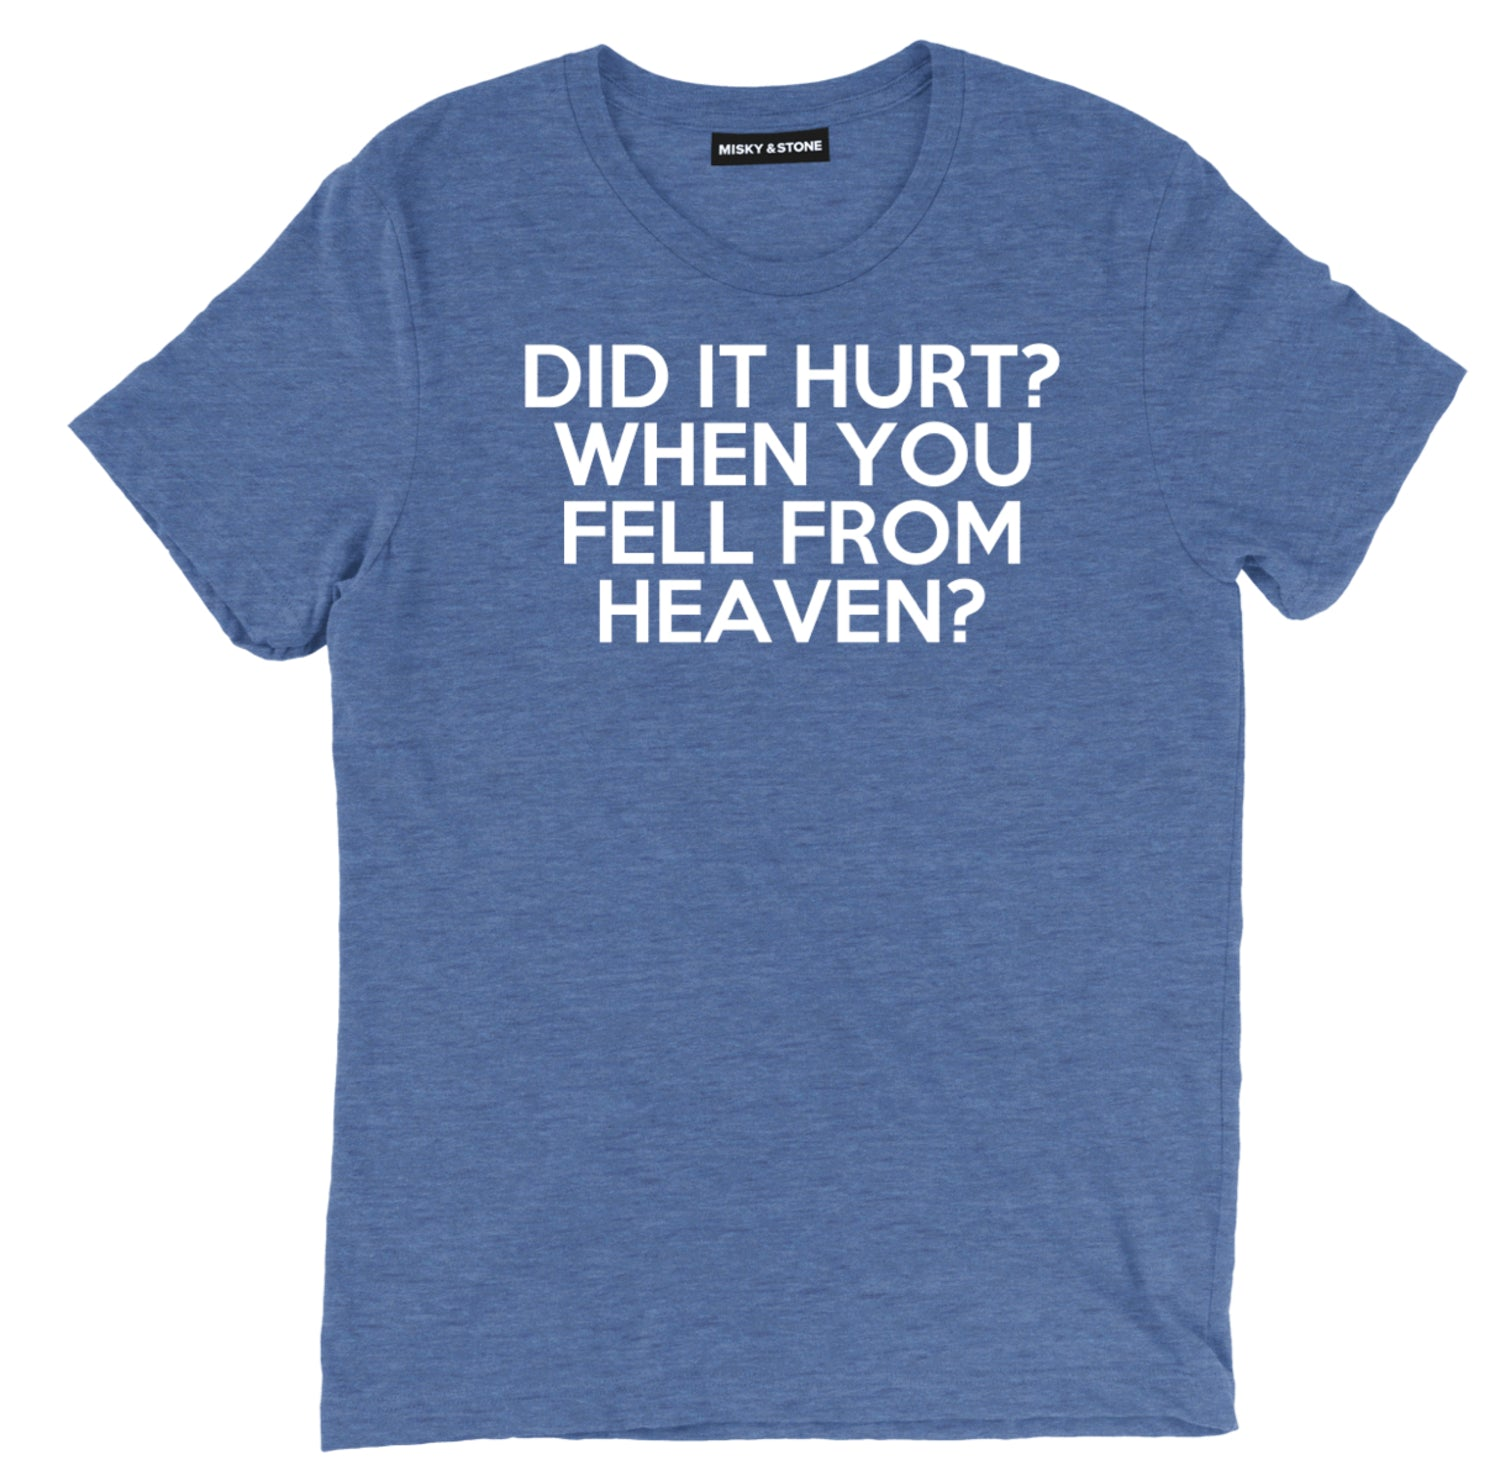 did it hurt when you fell from heaven? sarcastic t shirts, did it hurt sarcastic shirts, sarcastic tee shirts, funny pick up line tee sarcastic tees, sarcastic t shirt sayings, sarcastic t shirts quotes, funny sarcastic t shirts,